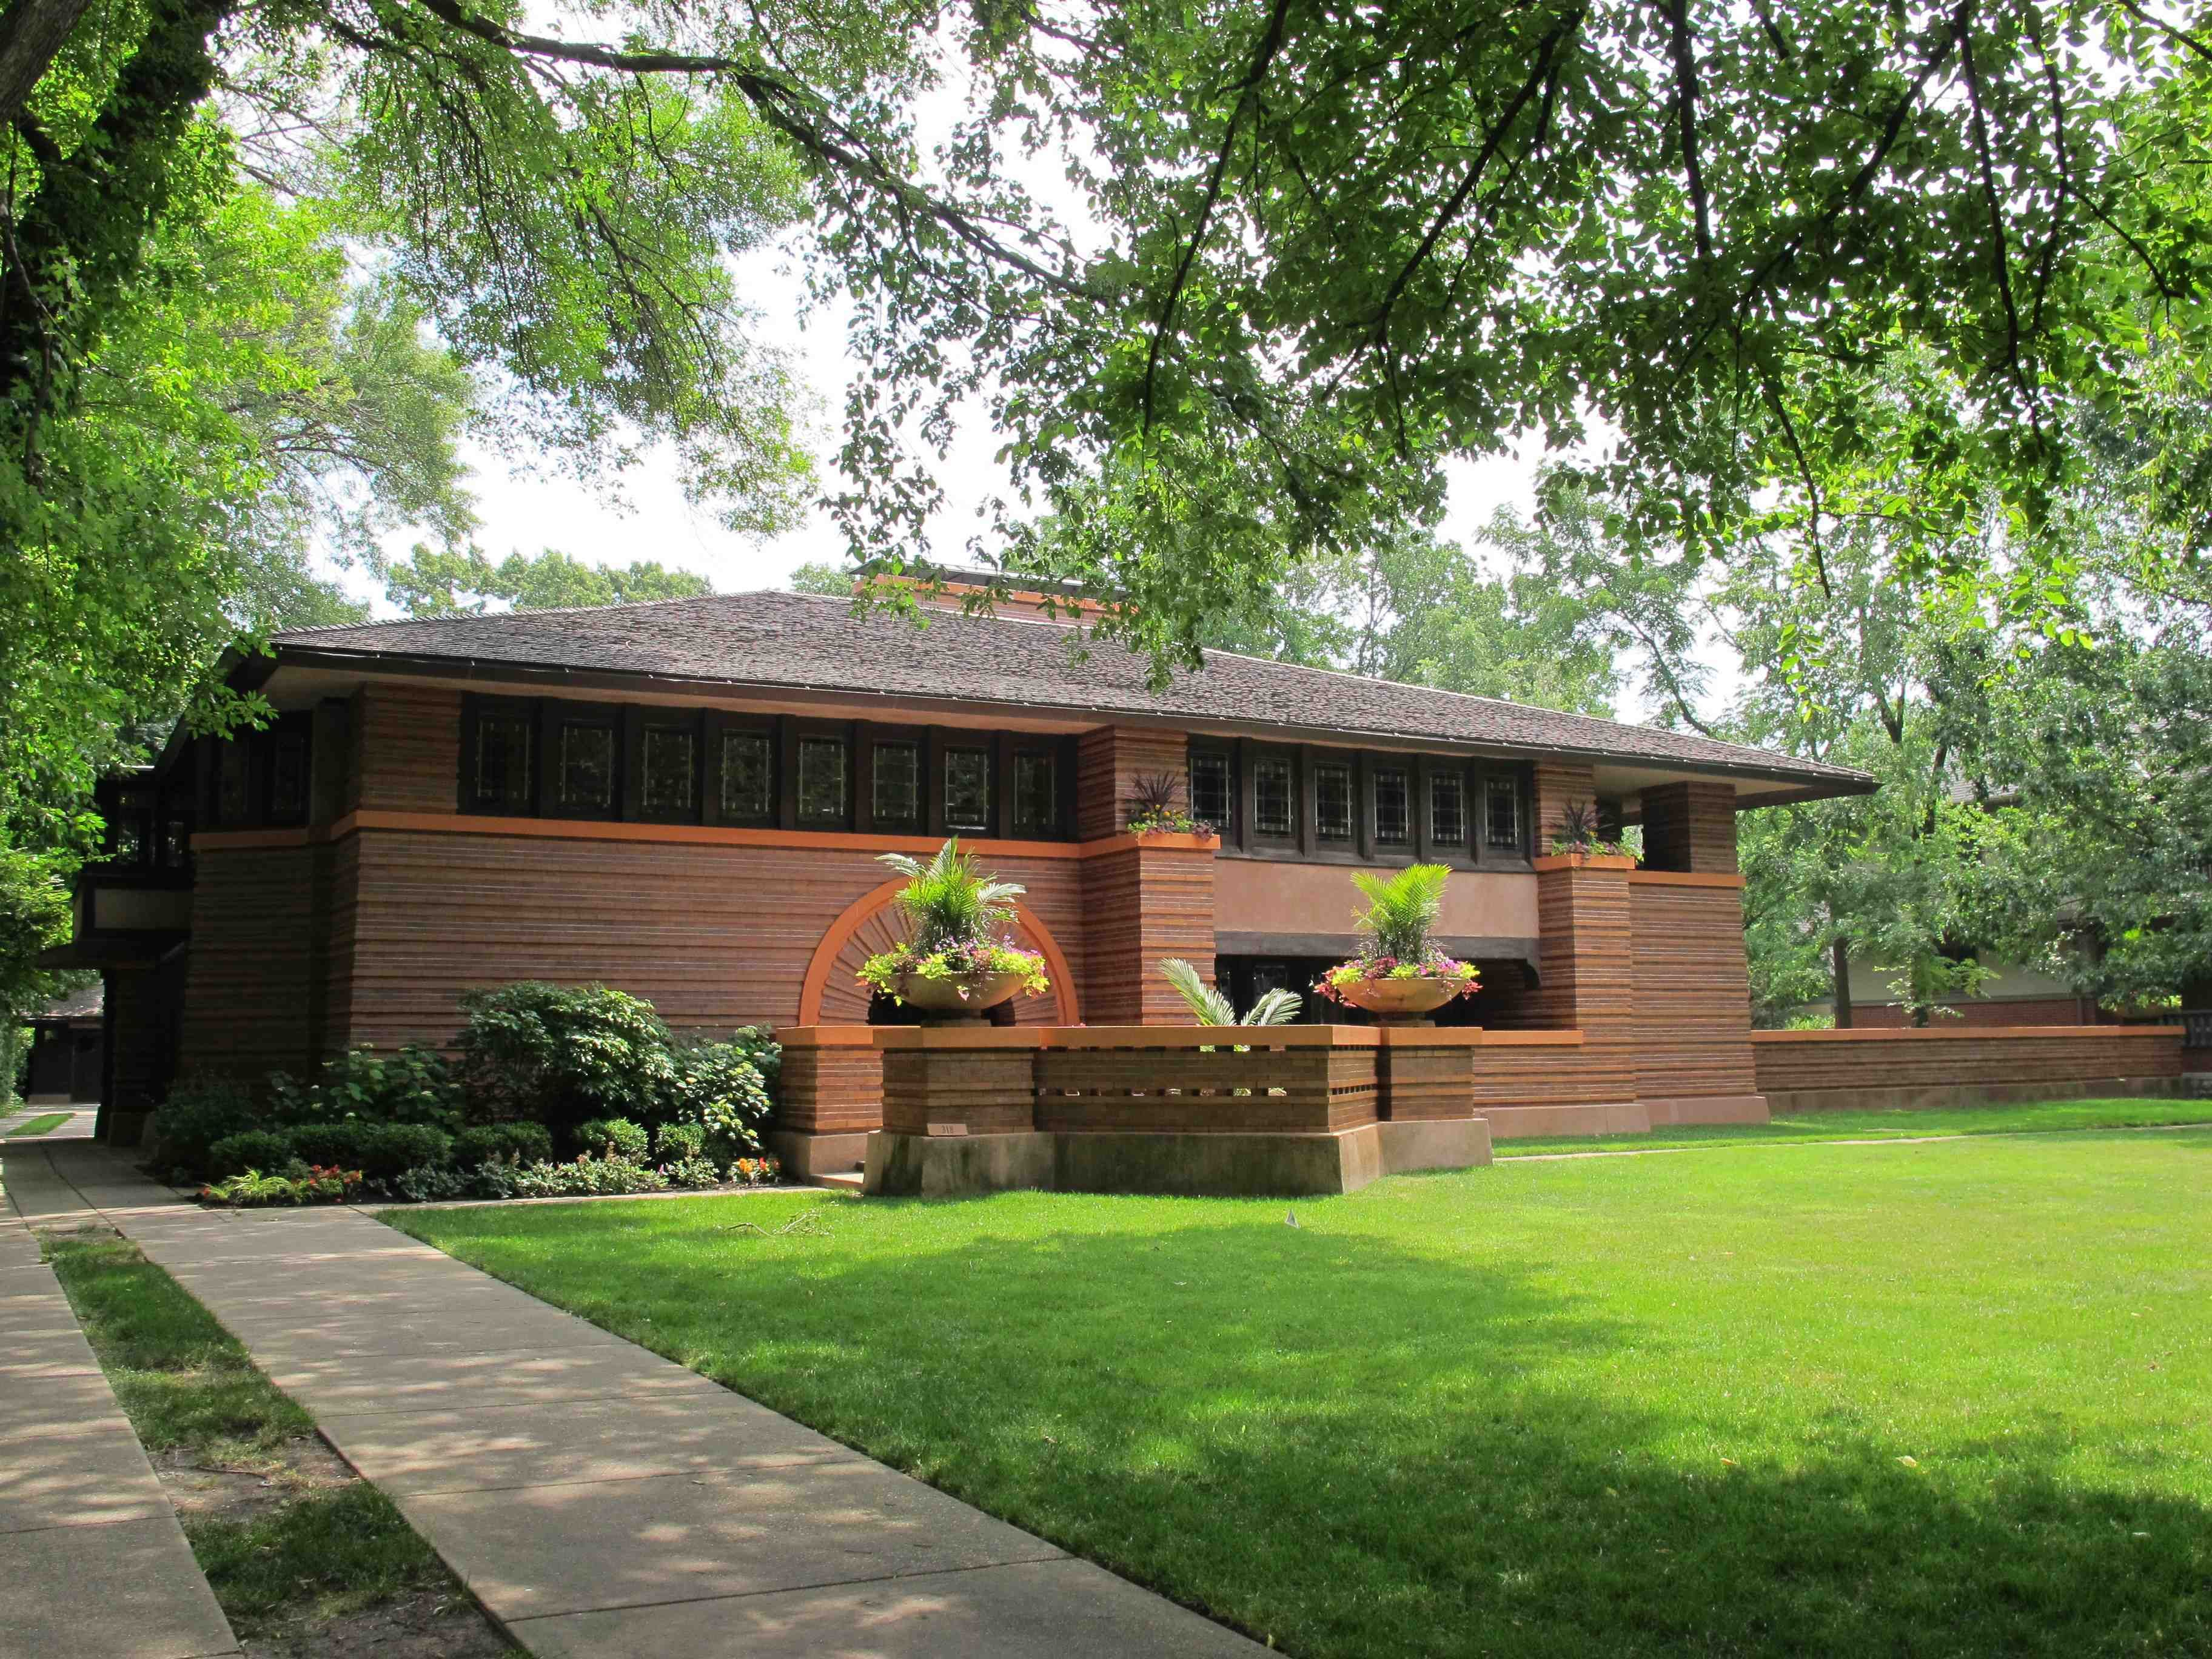 Frank Lloyd Wright Architectural Style Minimalist Exterior Home Popular Architectural Home Styles Home Exterior Projects